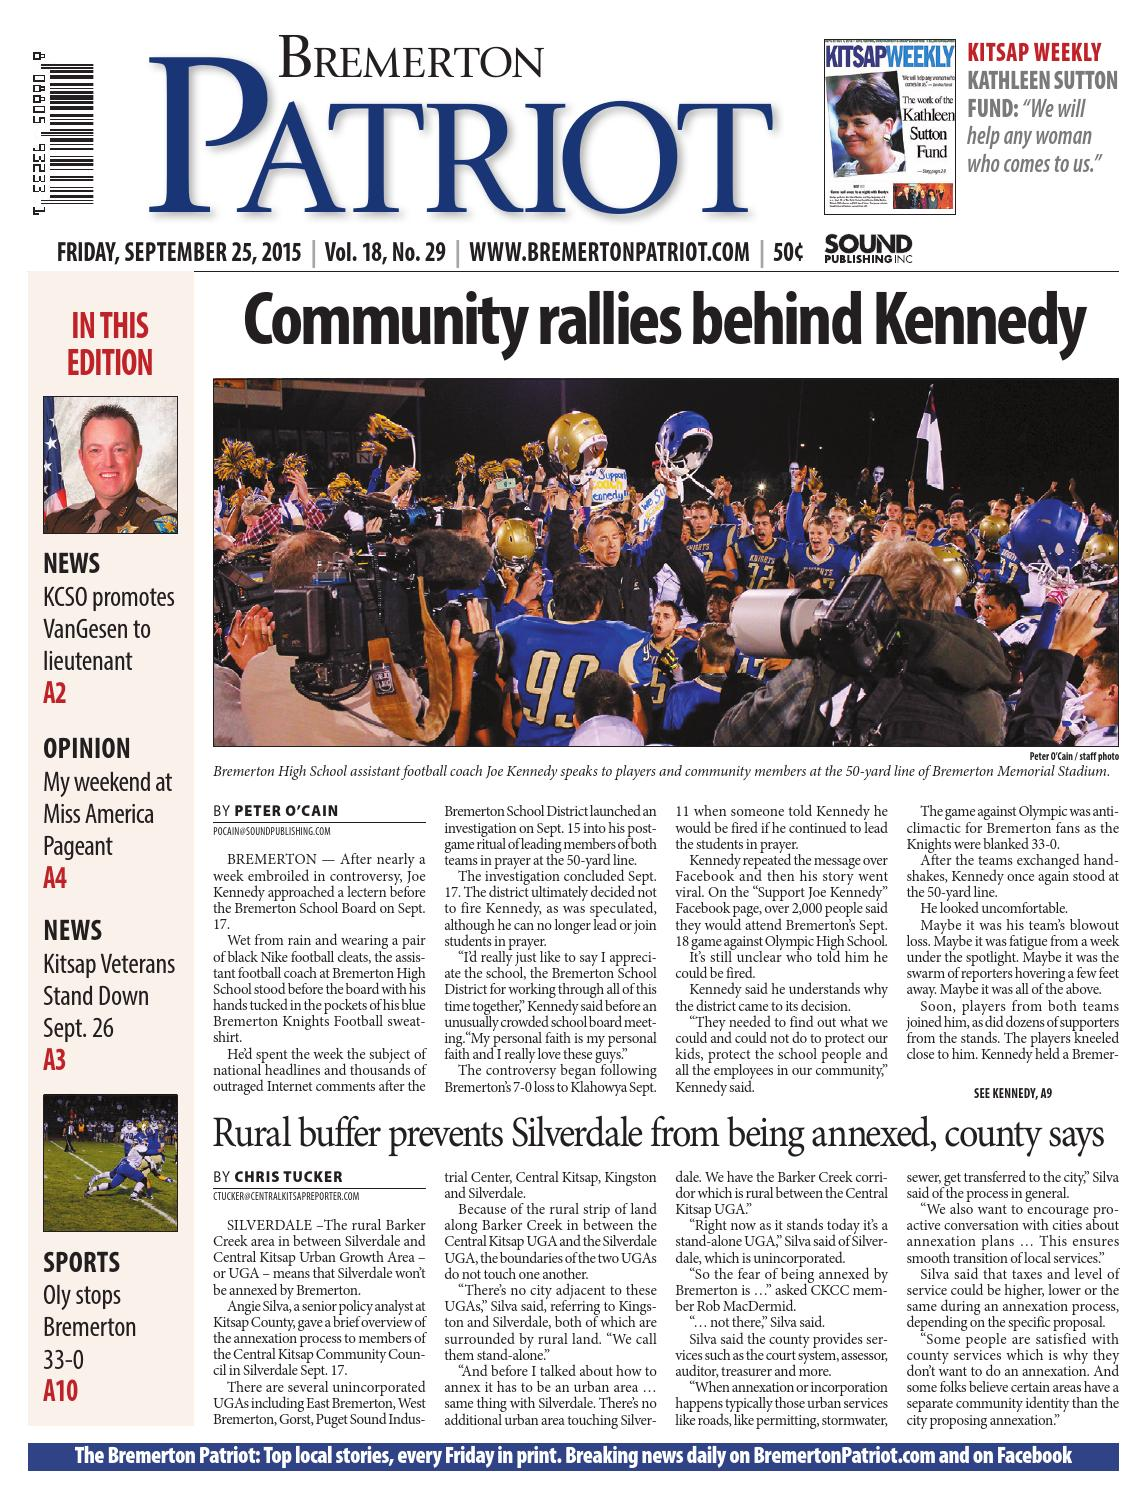 bremerton patriot, september 25, 2015 by sound publishing - issuu